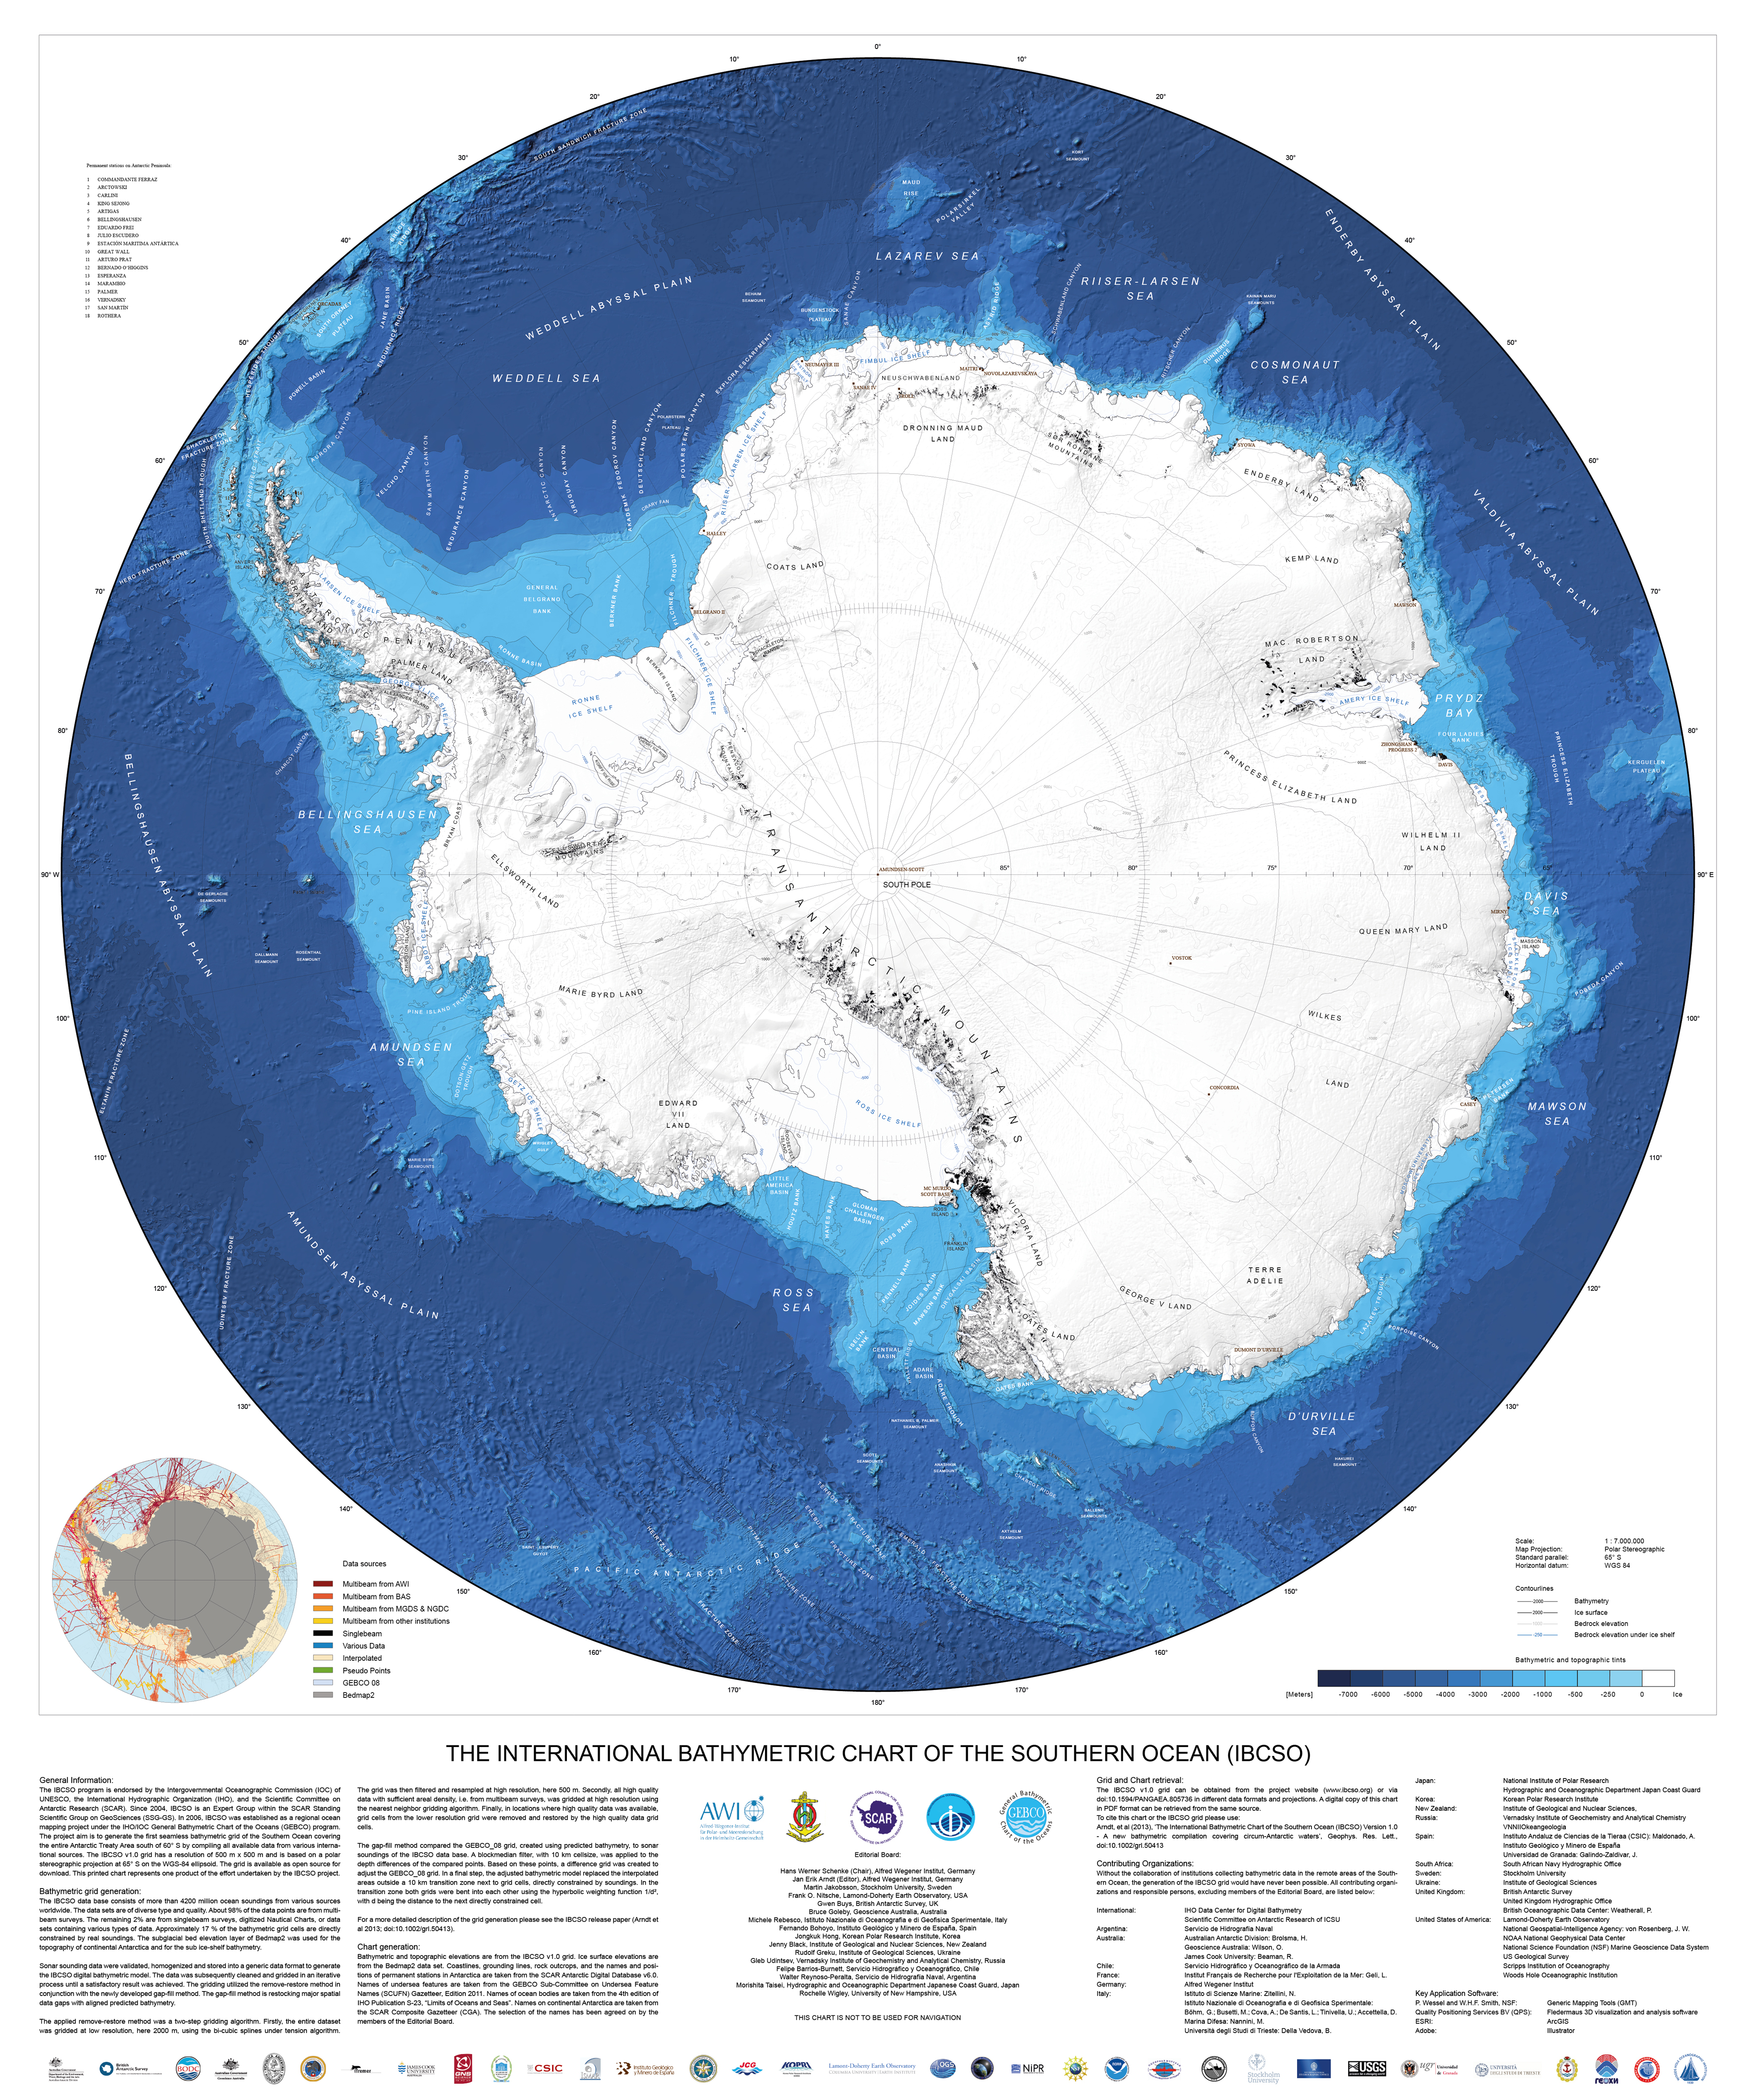 chart shows the entire topography of the Antarctic seafloor in